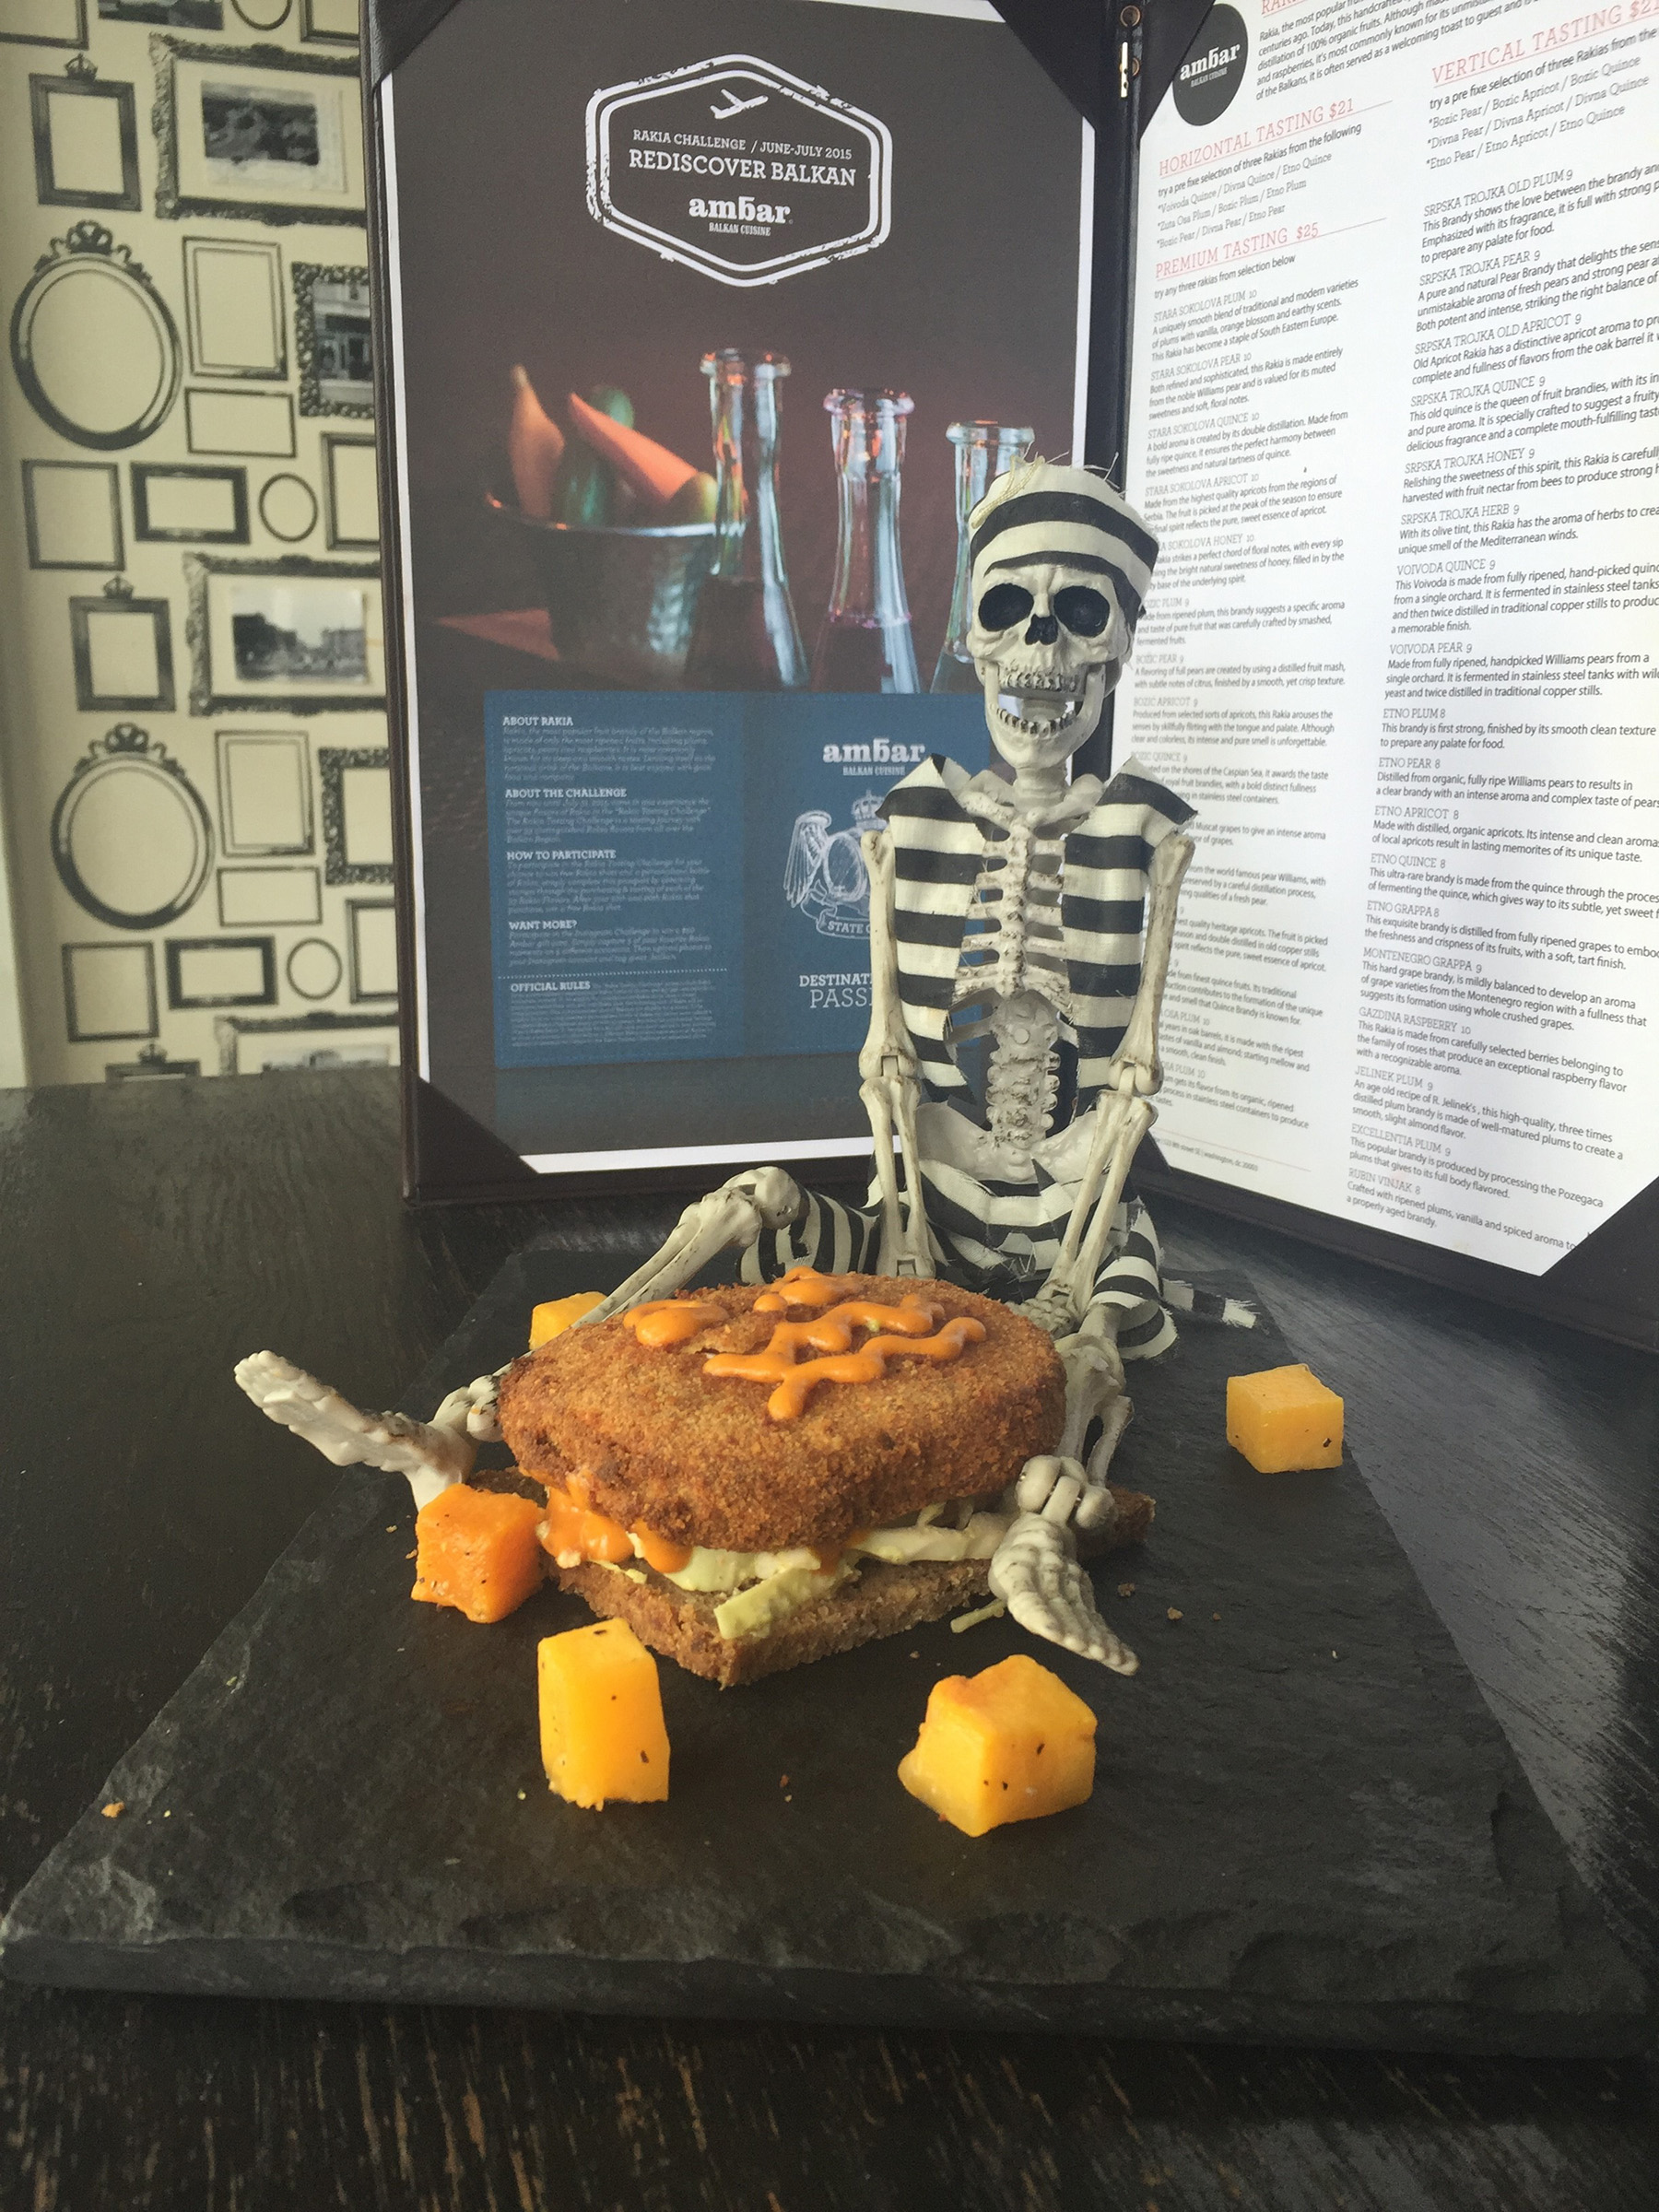 Ambar will feature a Halloween-themed sandwich  with organic slaw mix, breaded smoked gouda cheese, ajvar emulsion and roasted pumpkin cubes on gluten free bread topped shaped and decorated with the face of a jack-o-lantern from Oct. 26-Nov. 1. (Photo: Ambar)